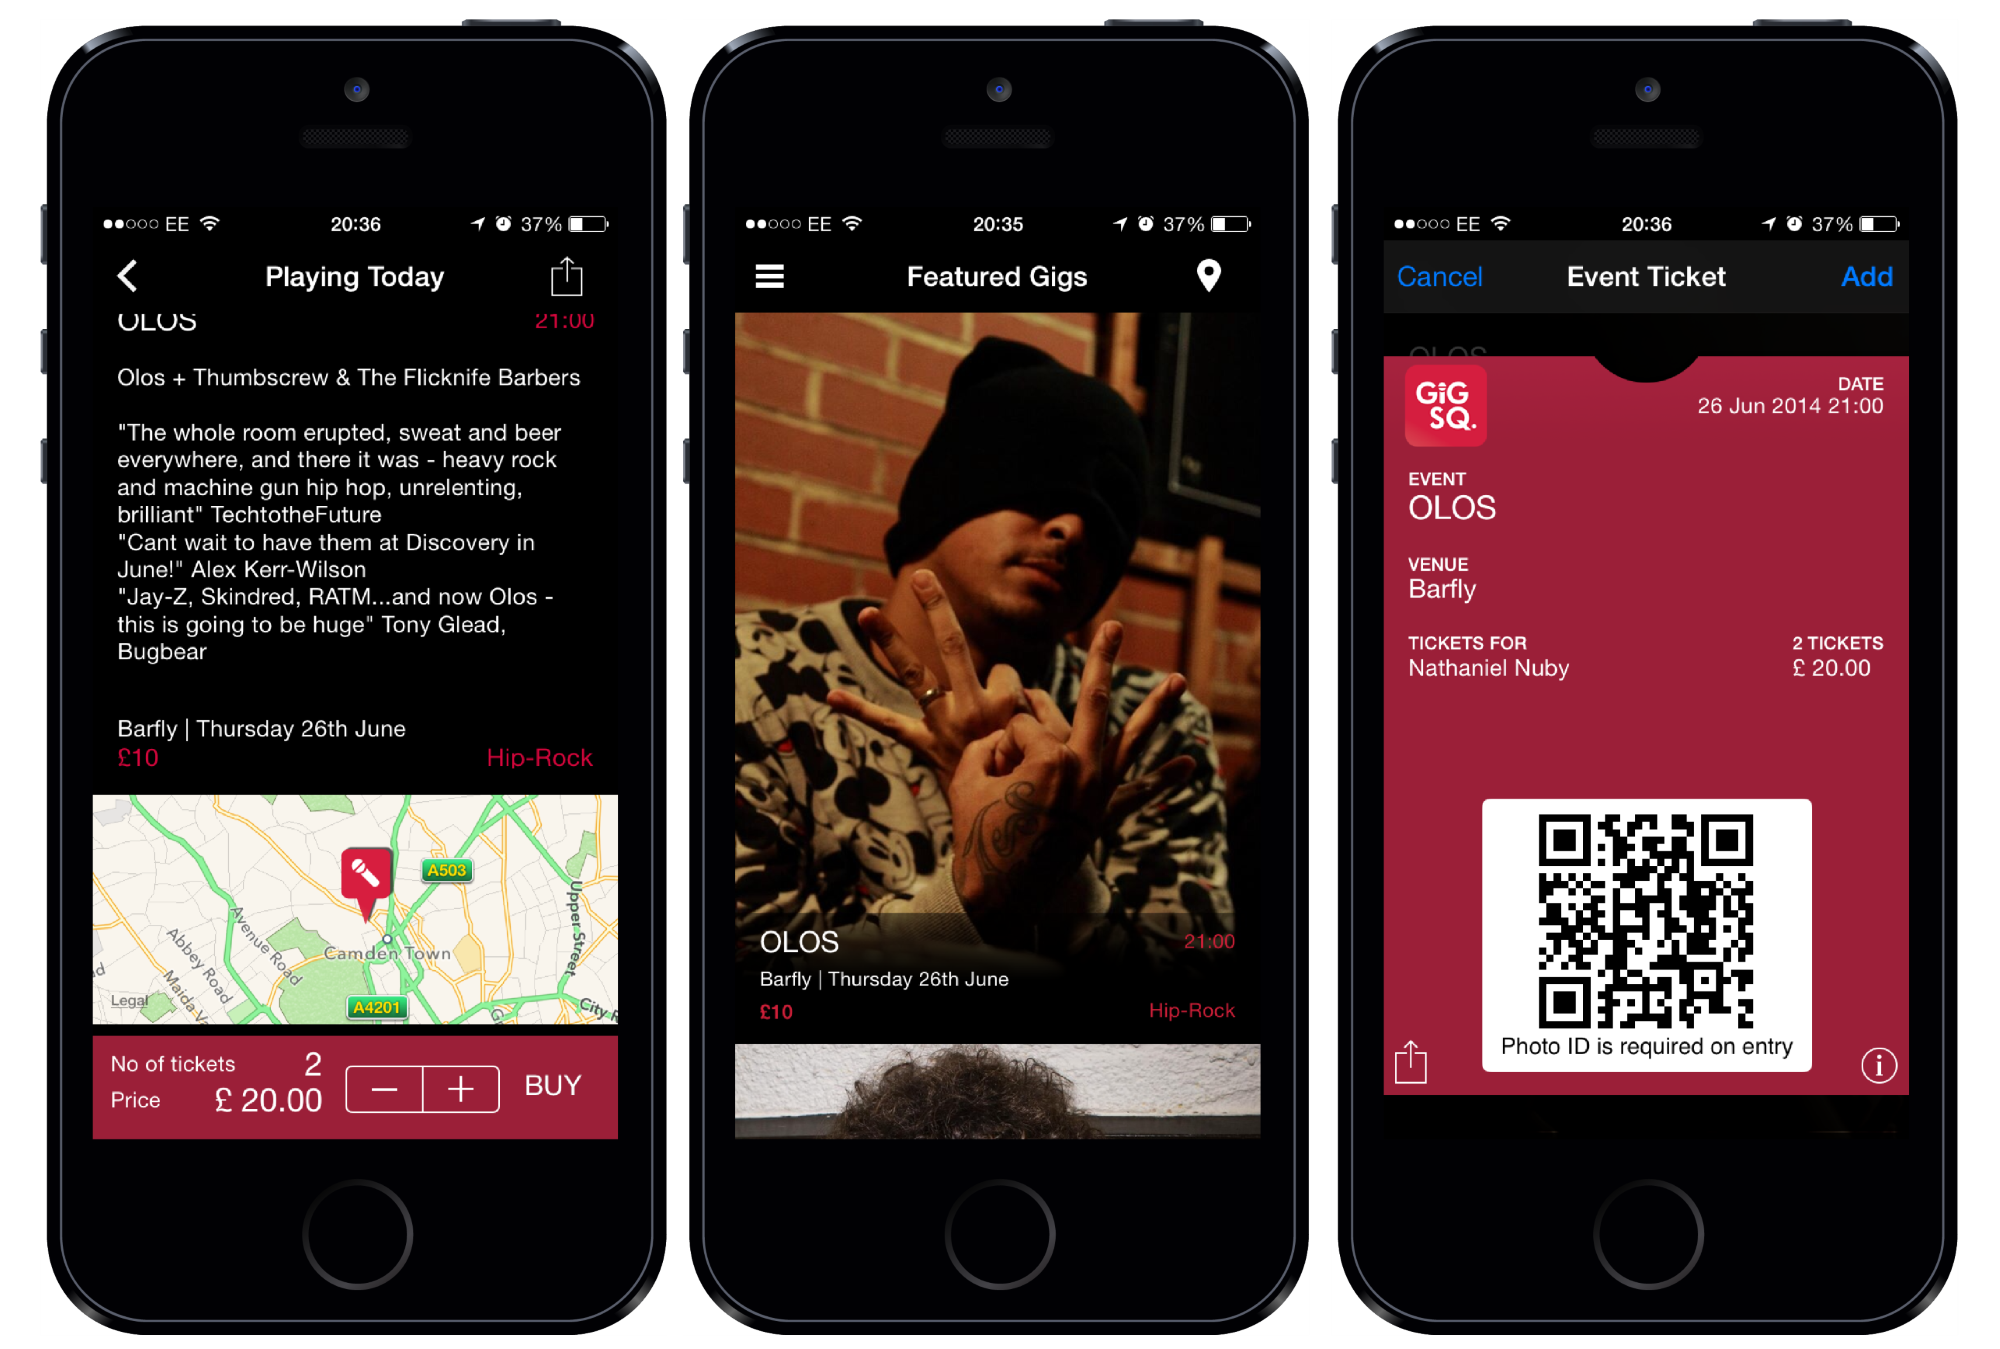 Live Music Discovery App Gig Sq. Expands into Ticketing